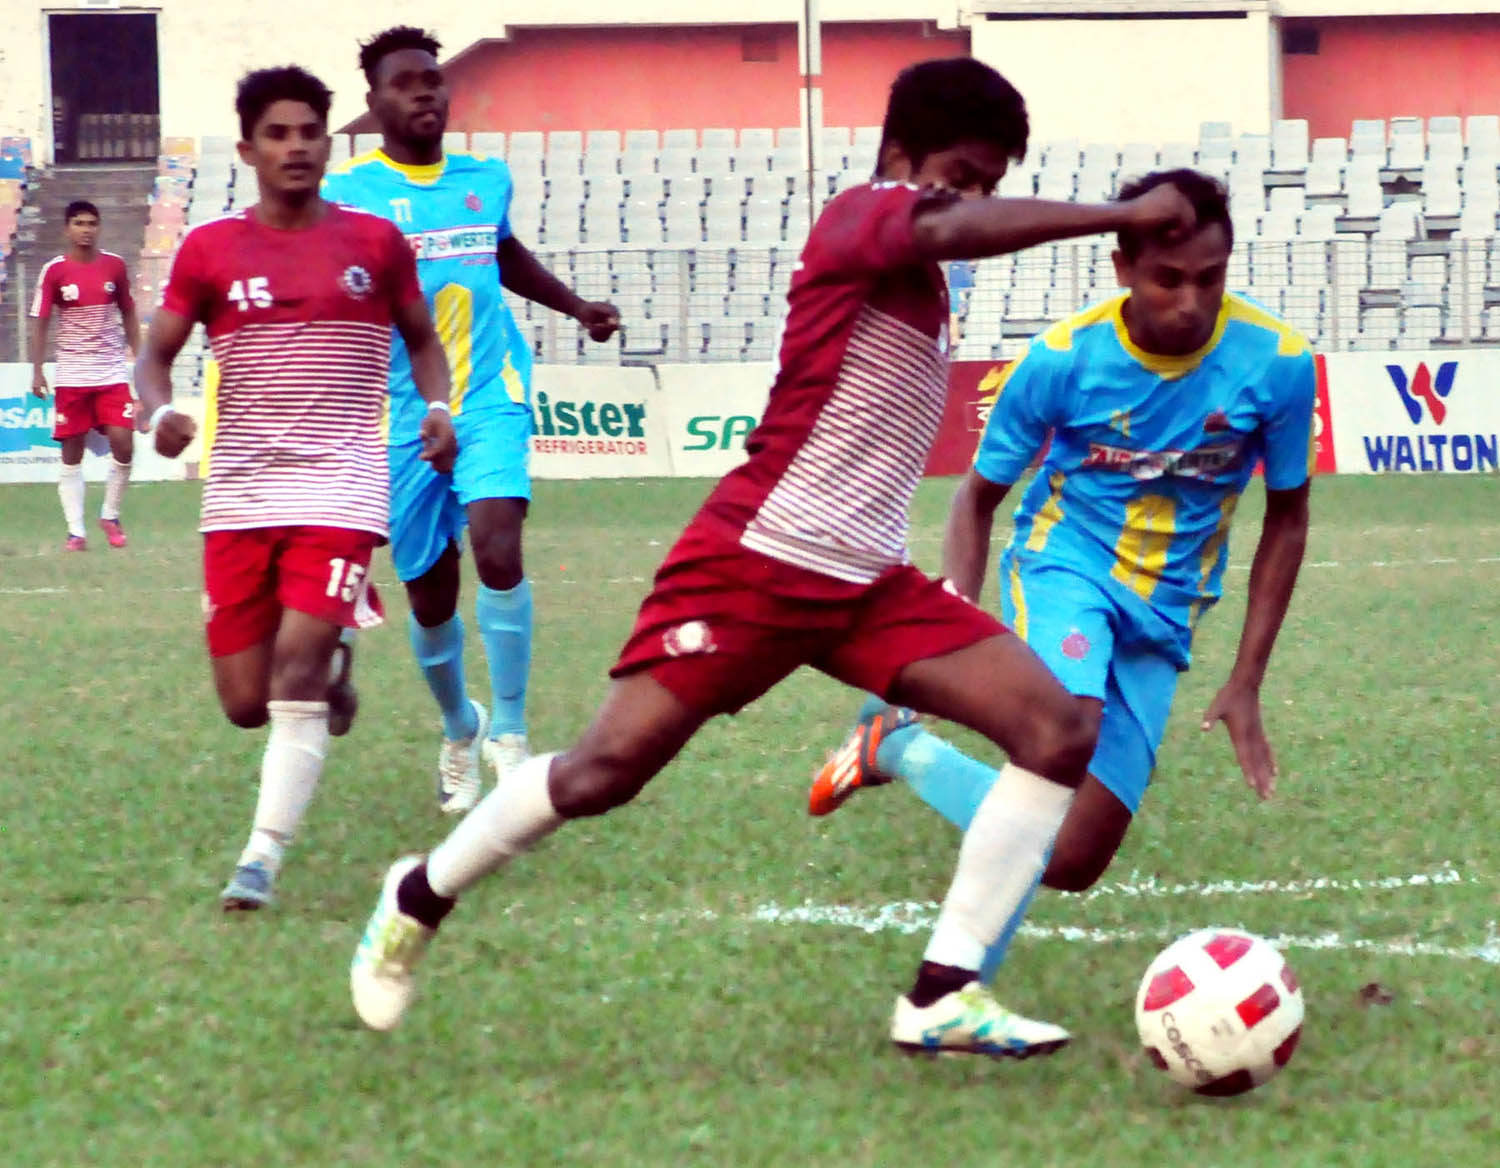 A moment of the match of the Saif Power Battery Bangladesh Premier League Football between Chittagong Abahani Limited and Team BJMC at the Bangabandhu National Stadium on Wednesday. Chittagong Abahani Limited won the match 2-0.